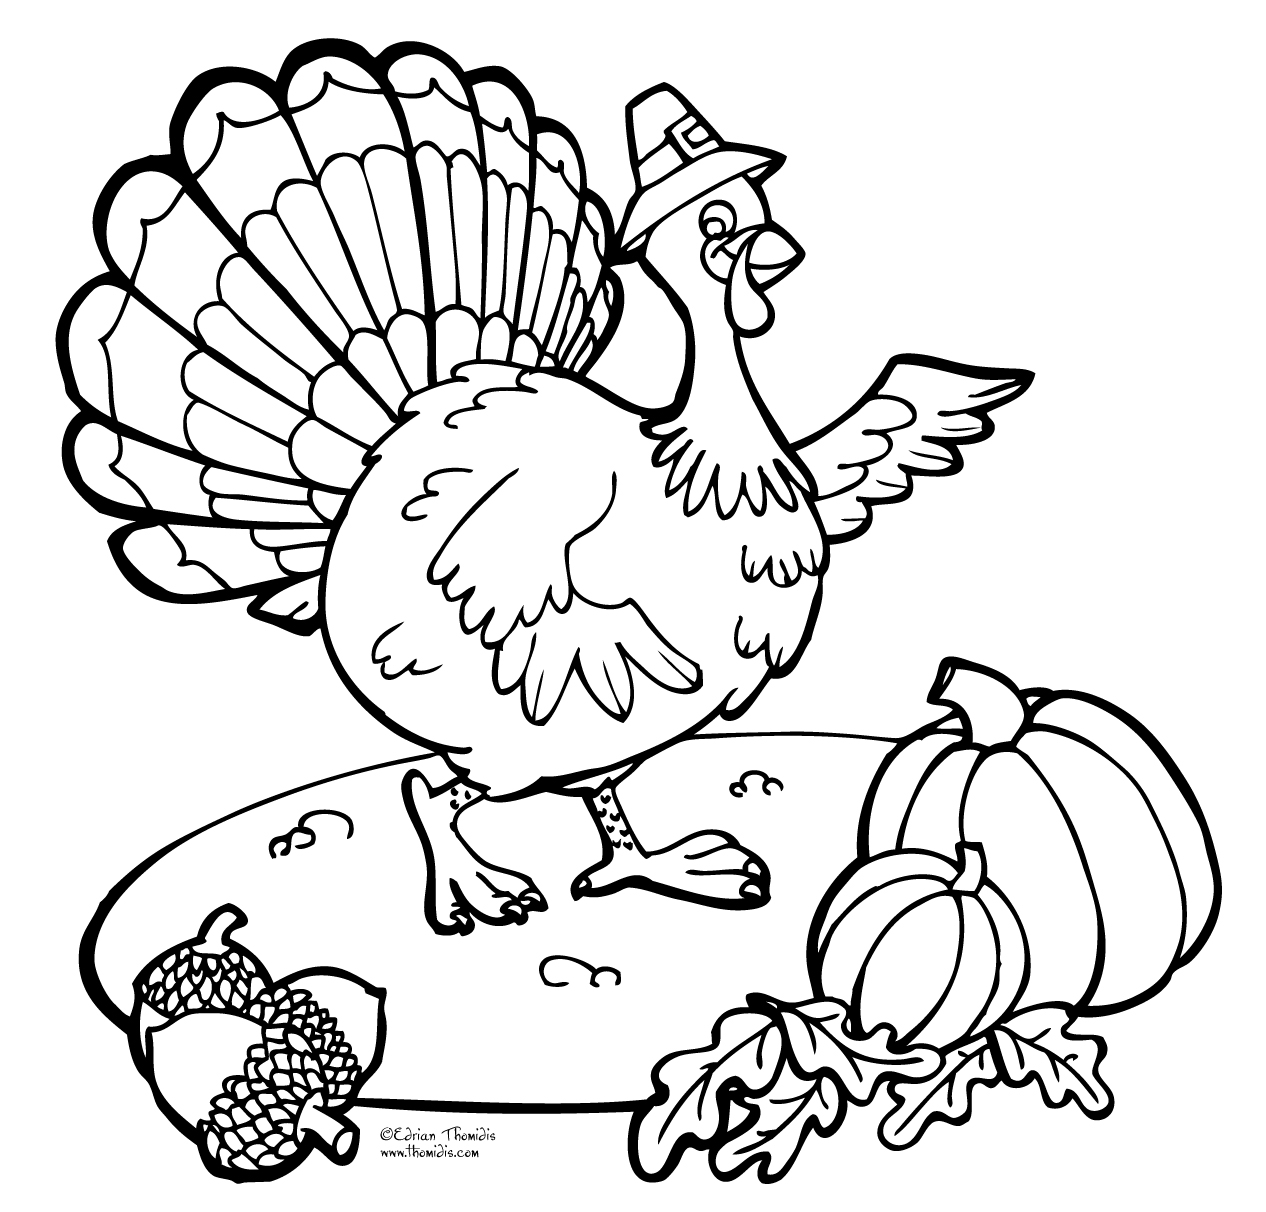 1266x1212 Easy Turkey Coloring Page For Thanksgiving Fancy Image